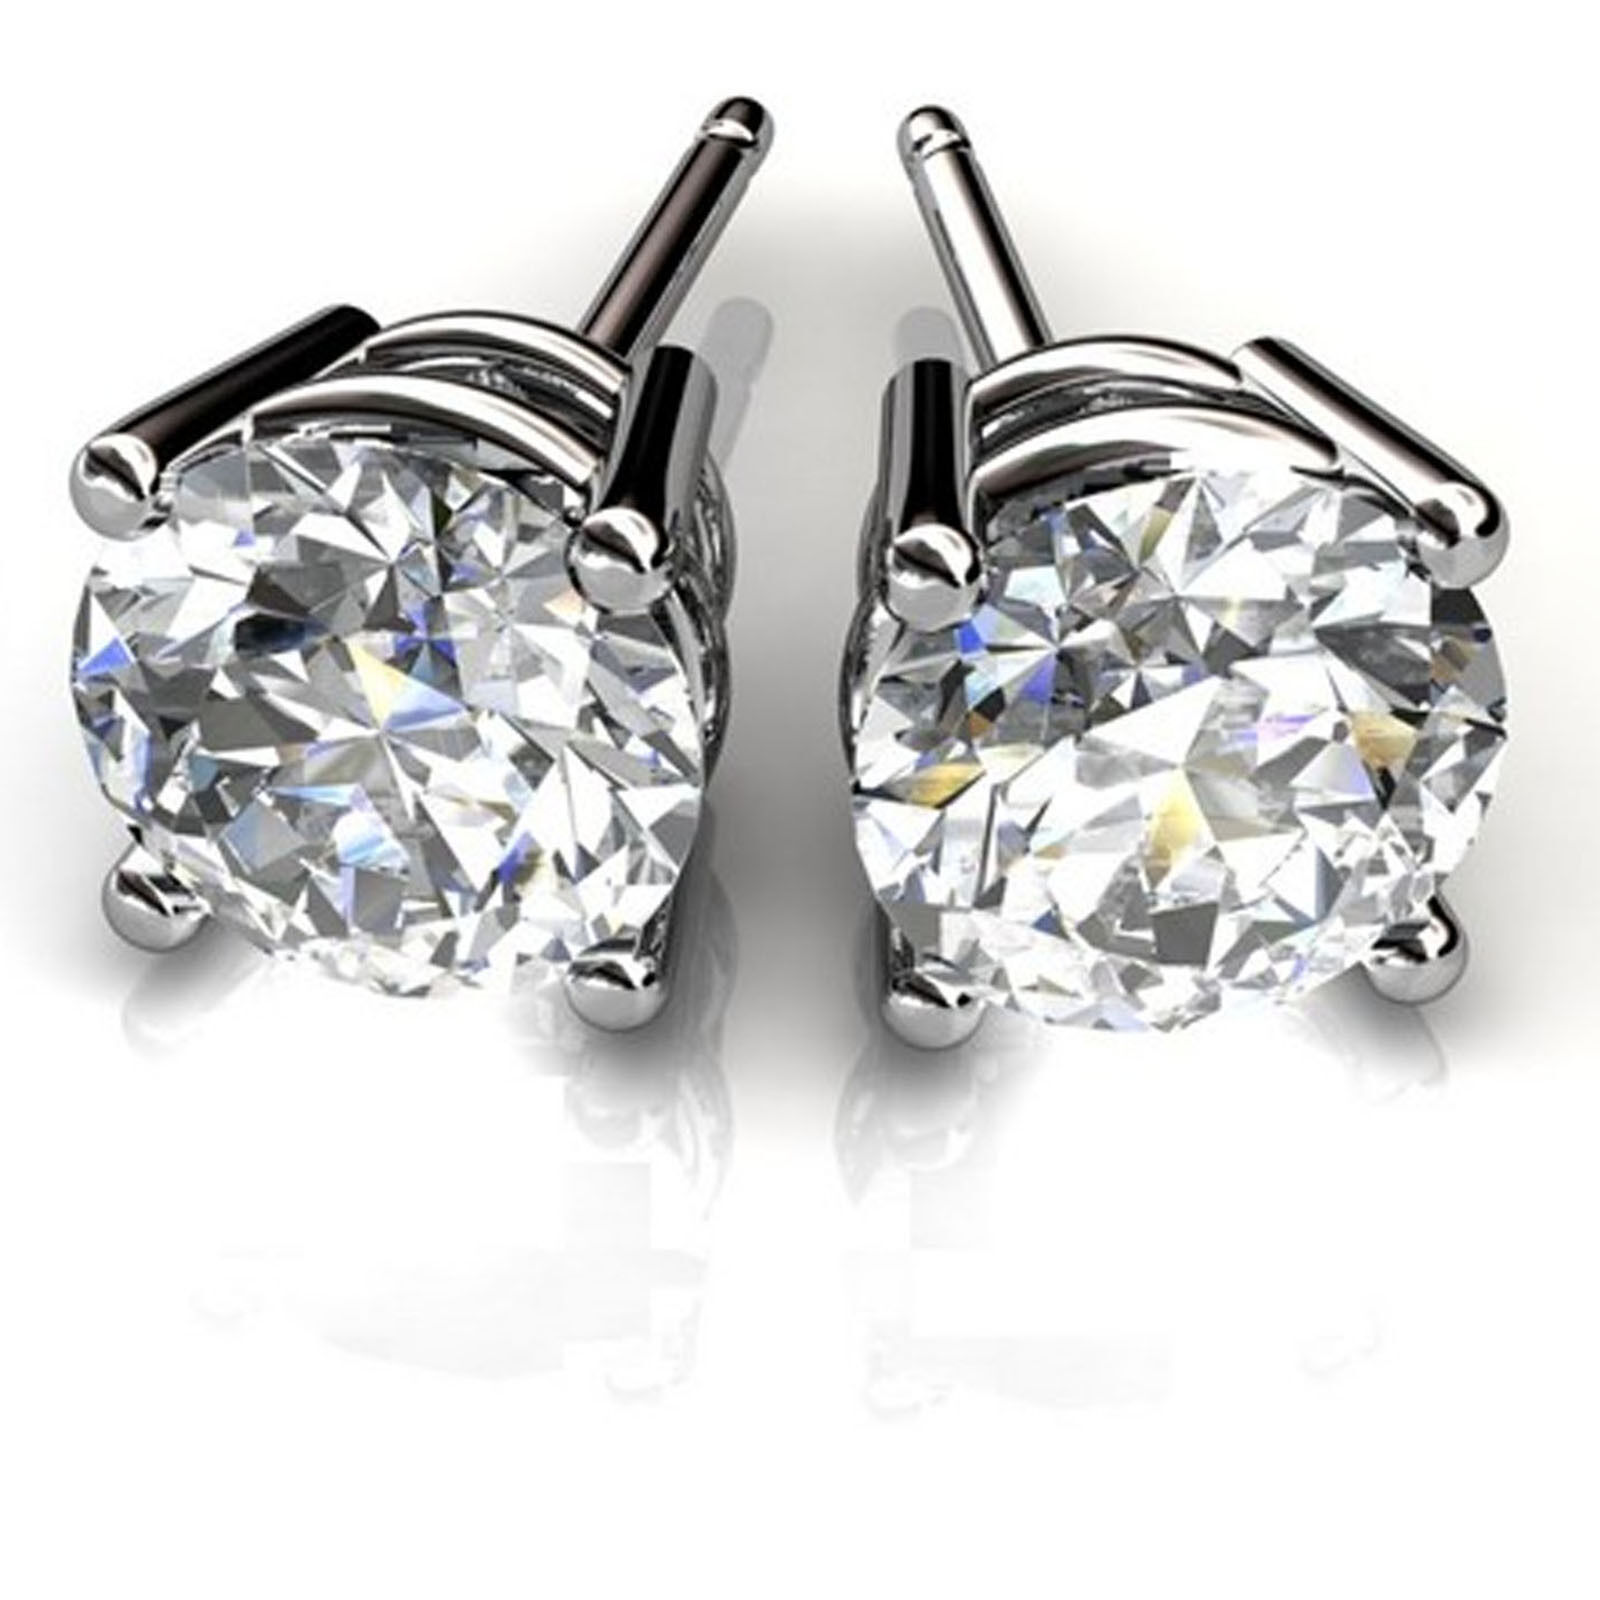 2.00Ct Diamond Earring Studs 14K White gold Brilliant Round Cut VVS1 D For Sale